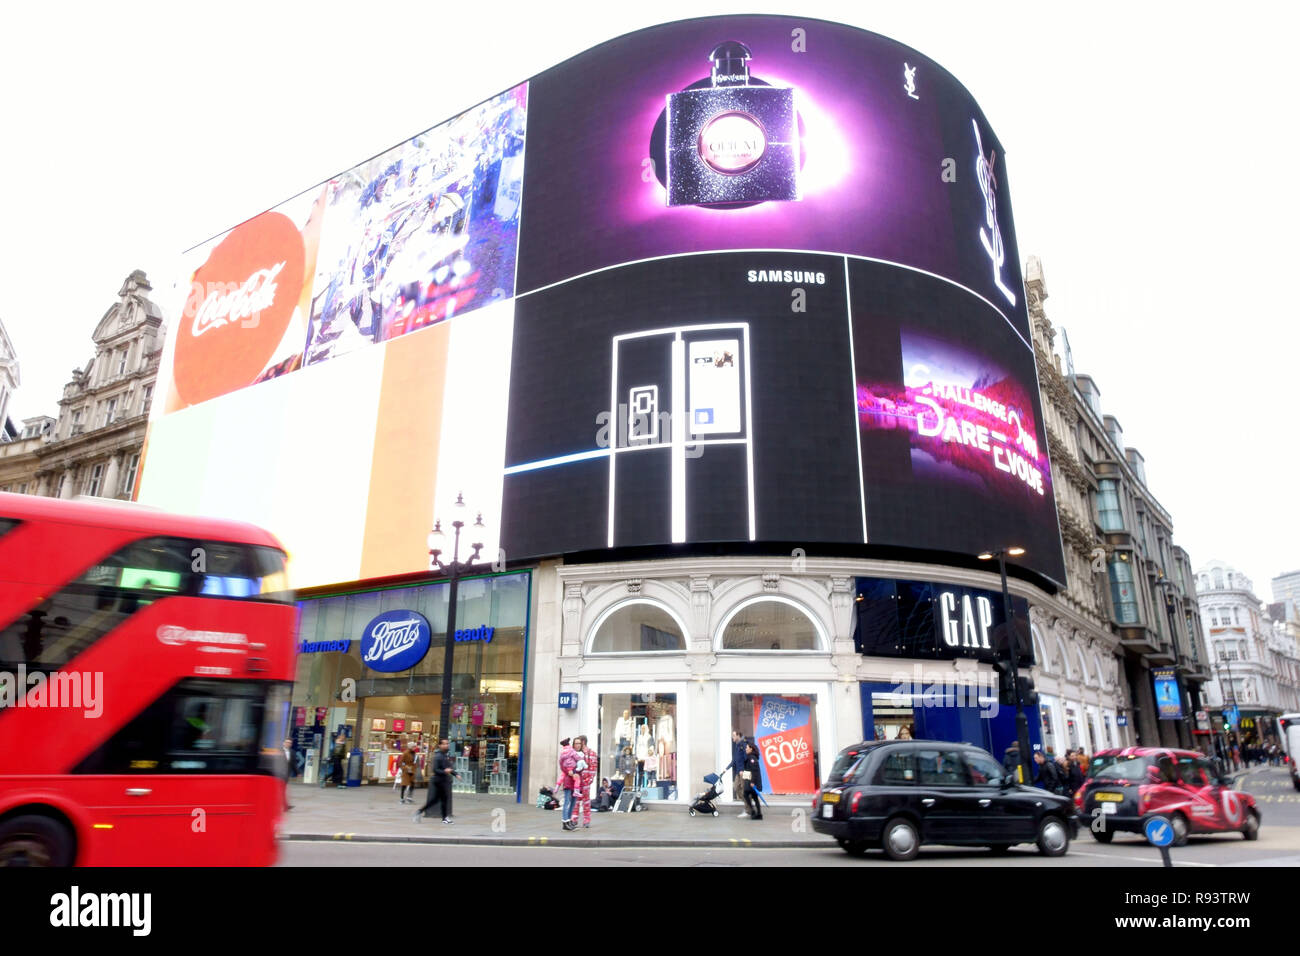 Updated LED technology advertising display in Piccadilly Circus, London Stock Photo